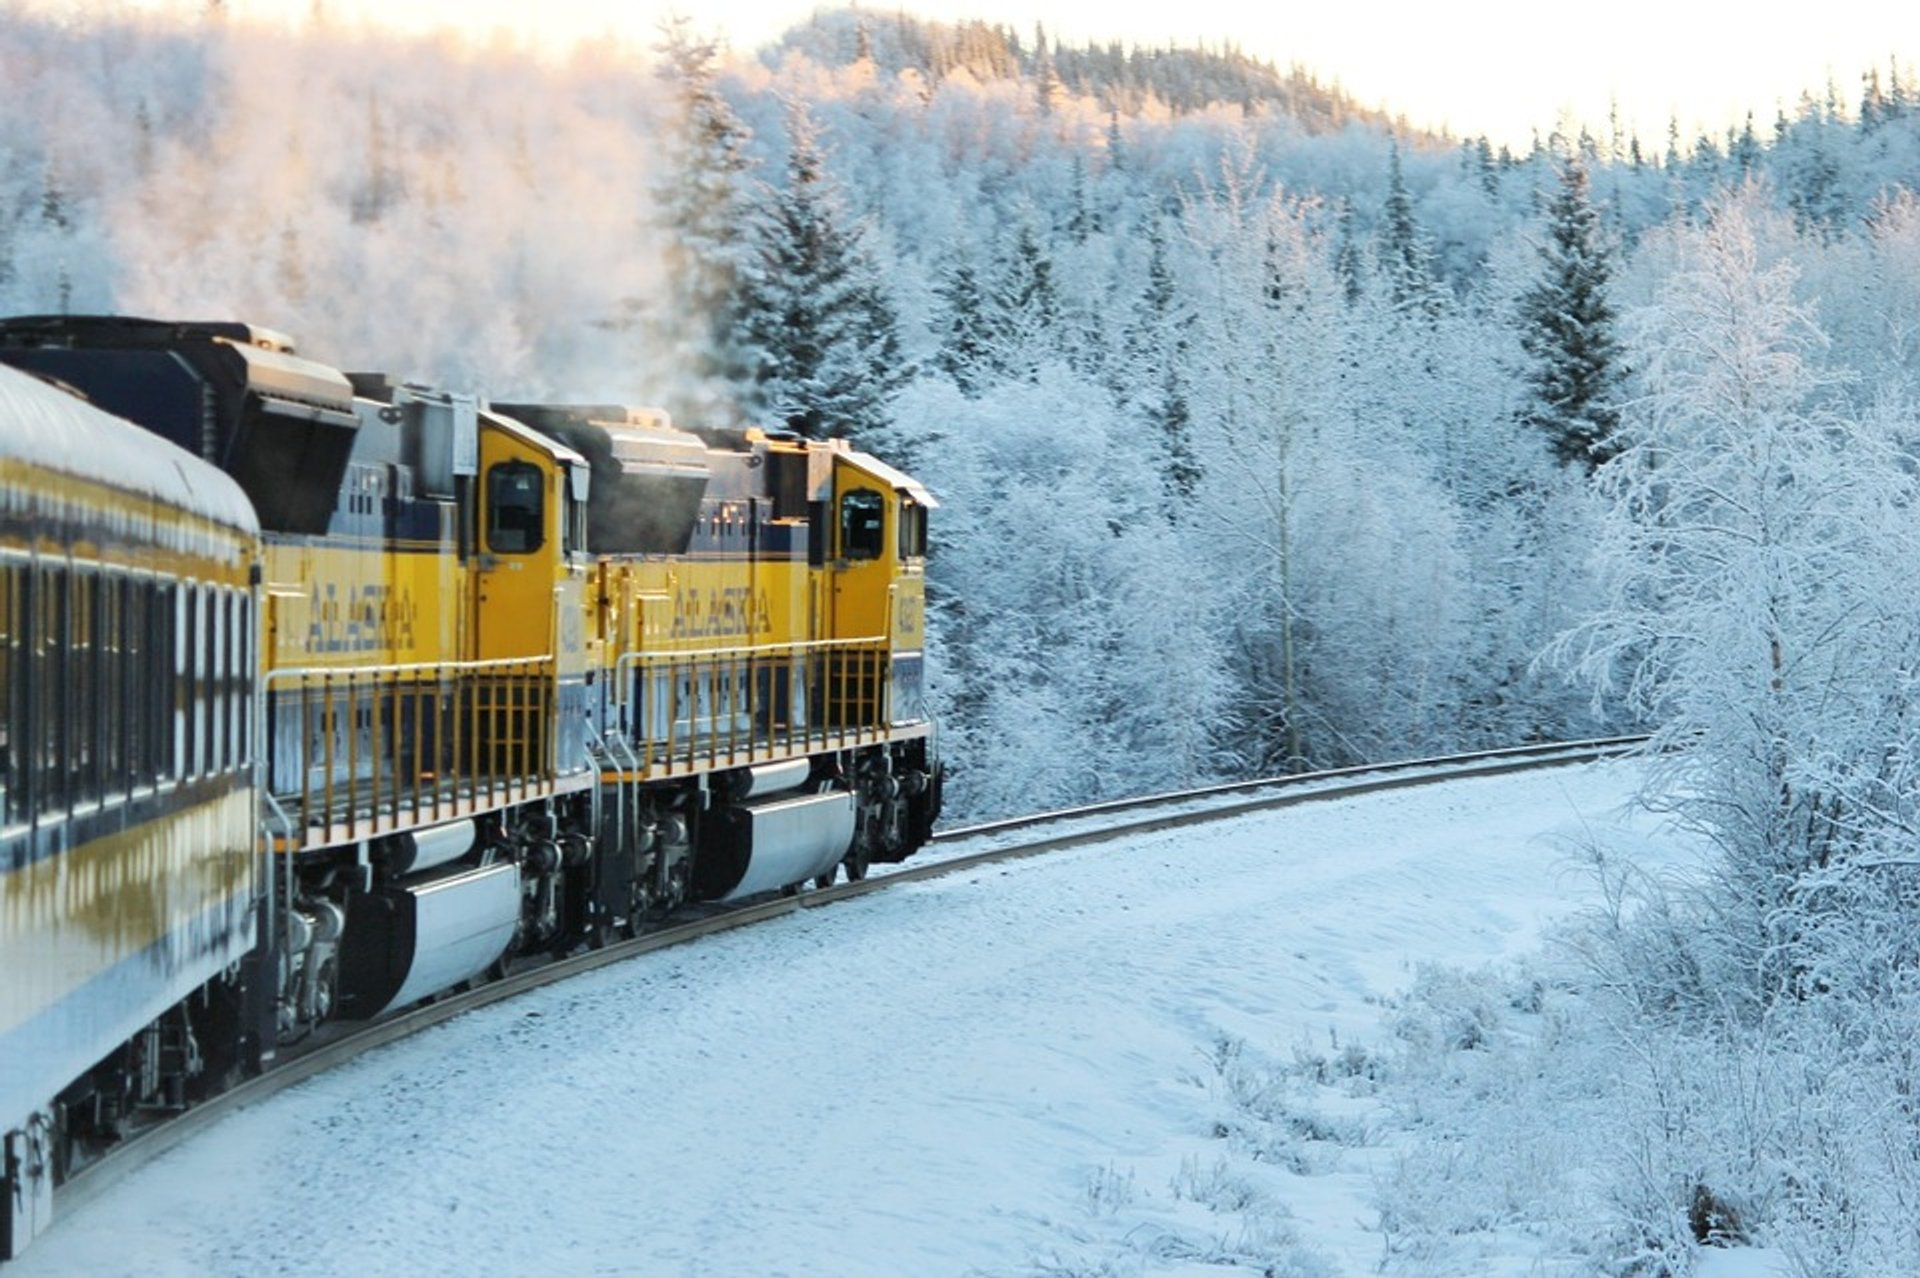 Winter Railroad Trip in Alaska 2020 - Best Time